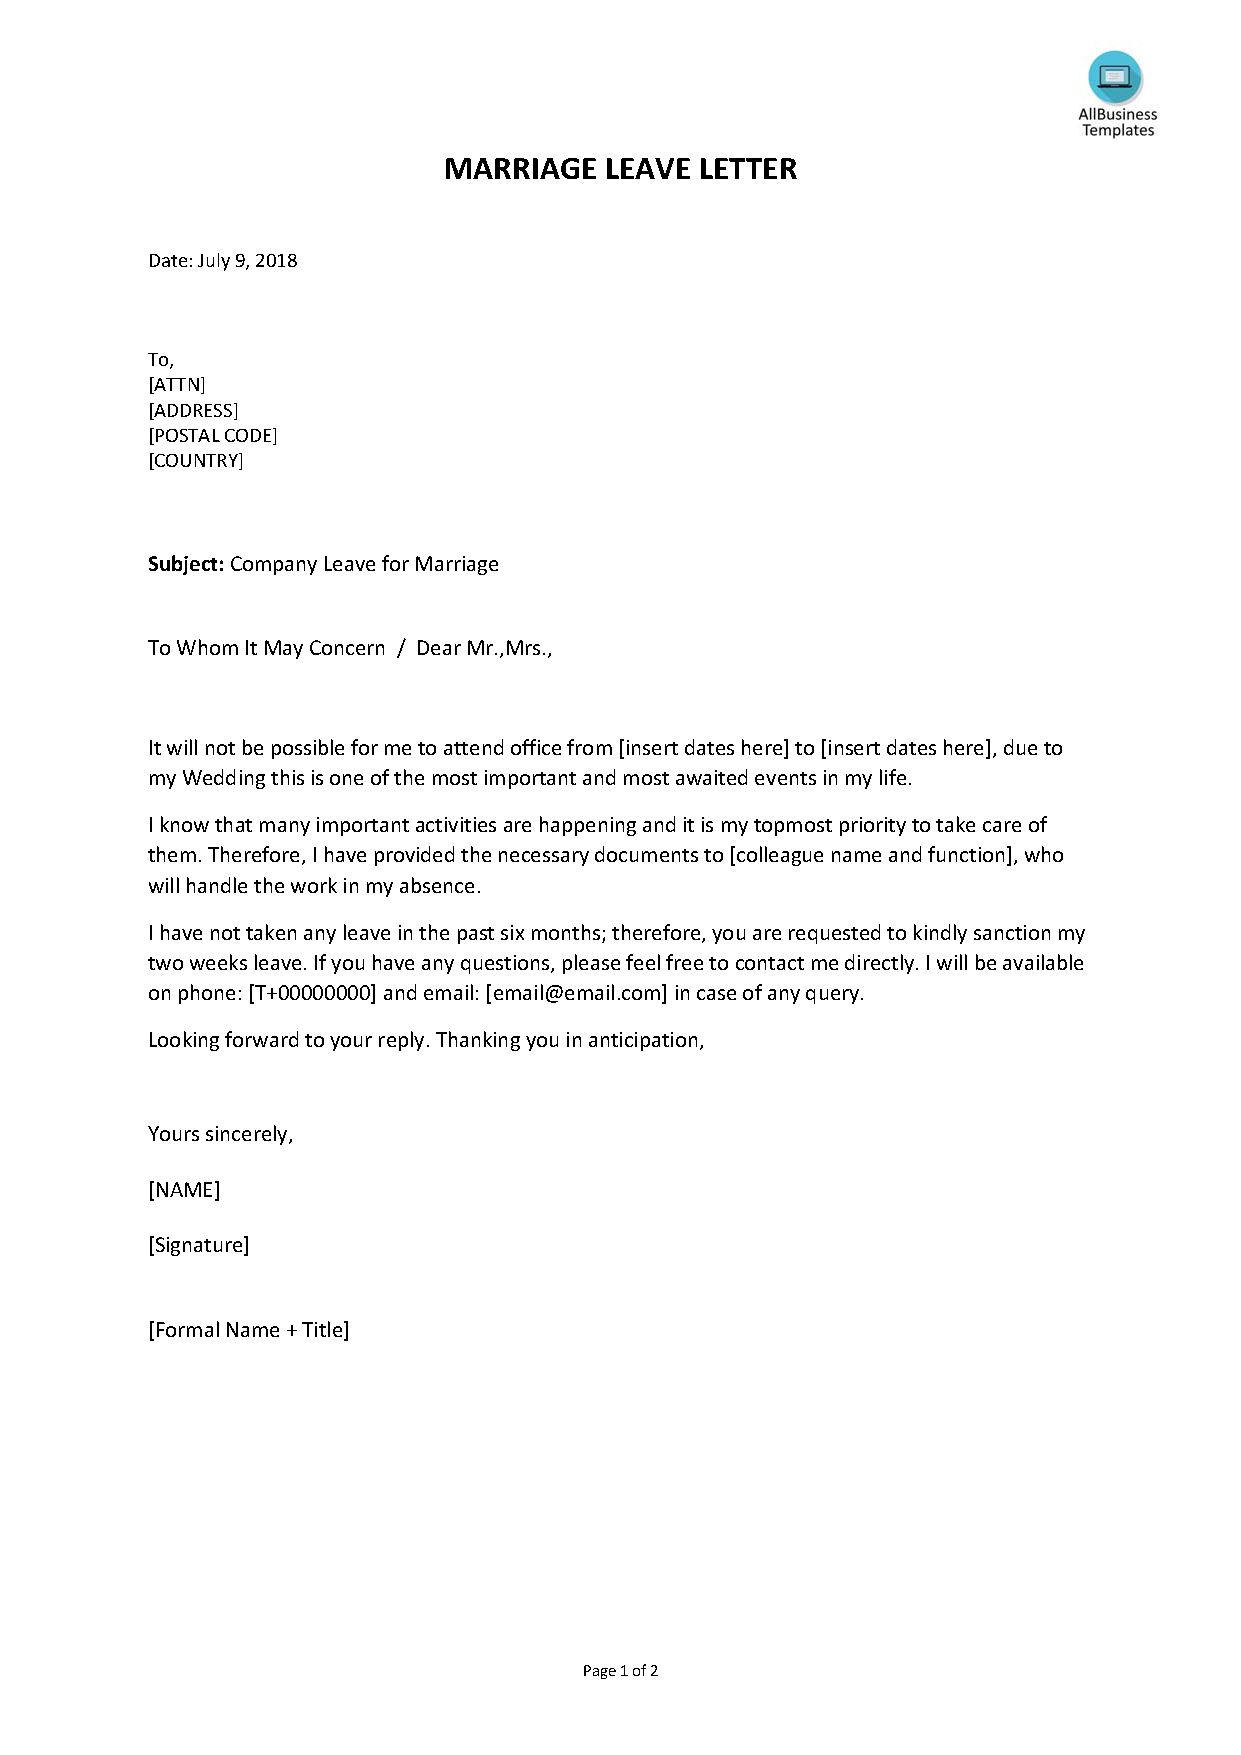 paid marriage leave letter main image download template